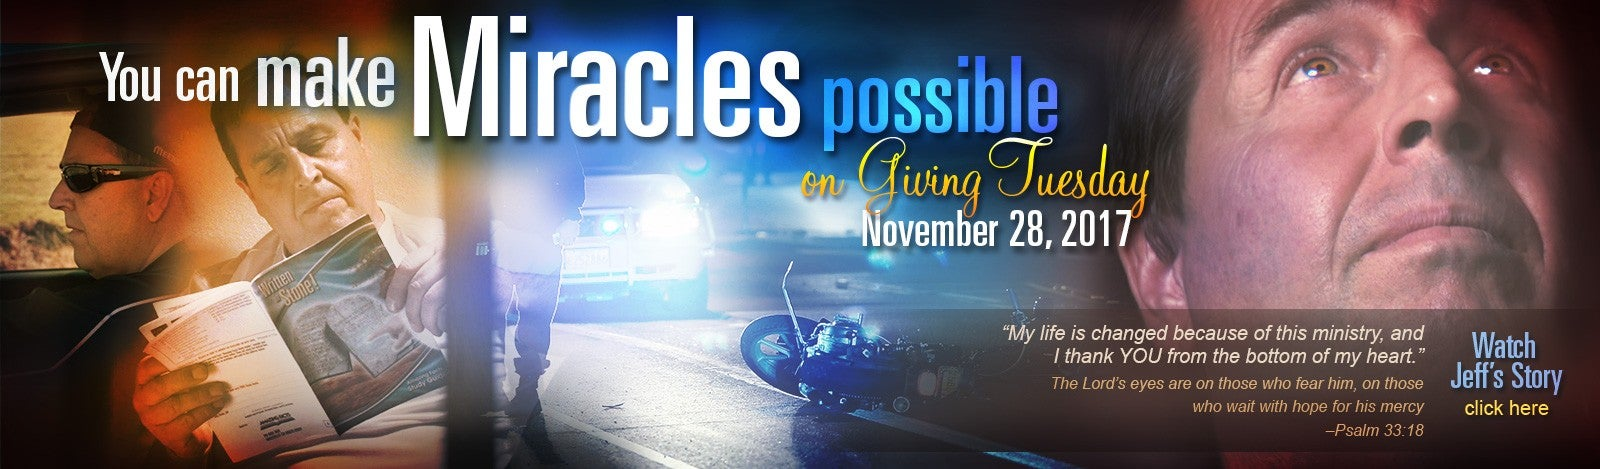 Making Miracles Possible